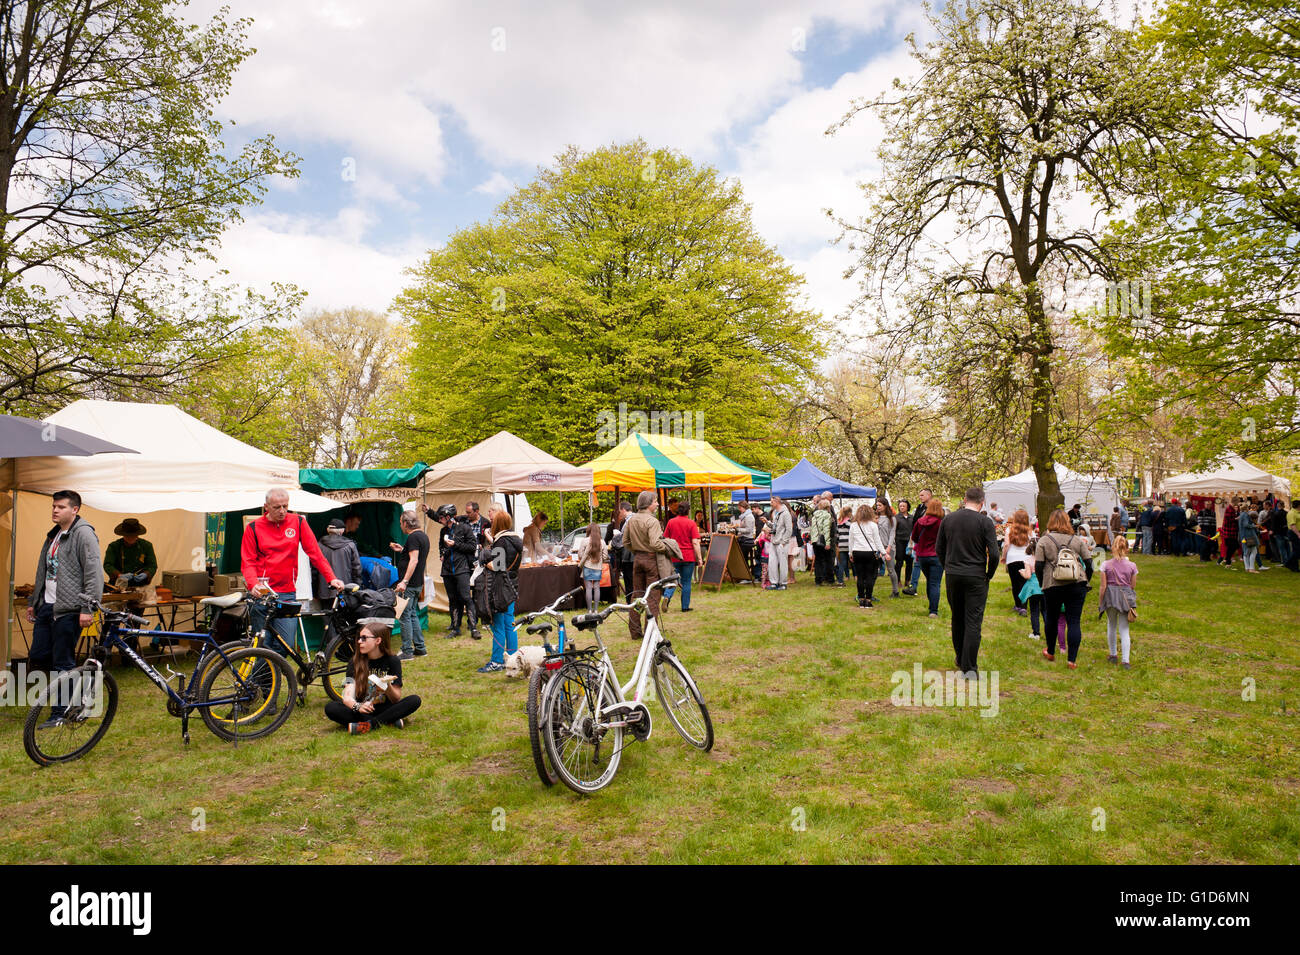 Food fair at May day picnic in Janowiec Castle in Poland, Europe, leisure during Swedes invasion reenactment, tables - Stock Image